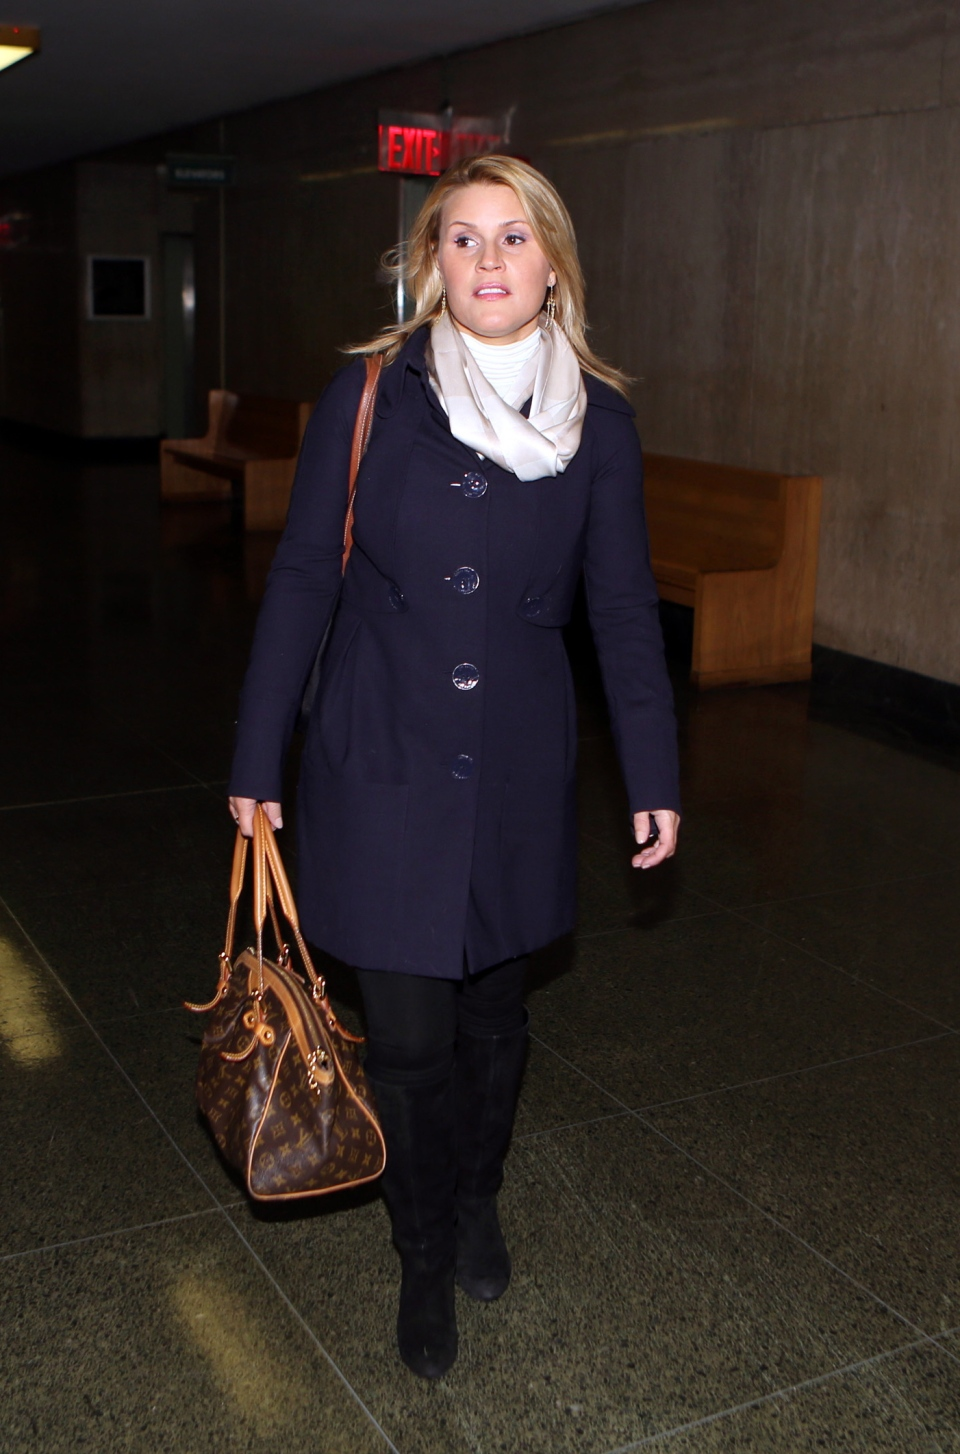 Genevieve Sabourin, who is charged with stalking actor Alec Baldwin, enters Manhattan Criminal Court for her trial Tuesday, Nov. 12, 2013, in New York. (AP Photo/Jefferson Siegel, Pool)